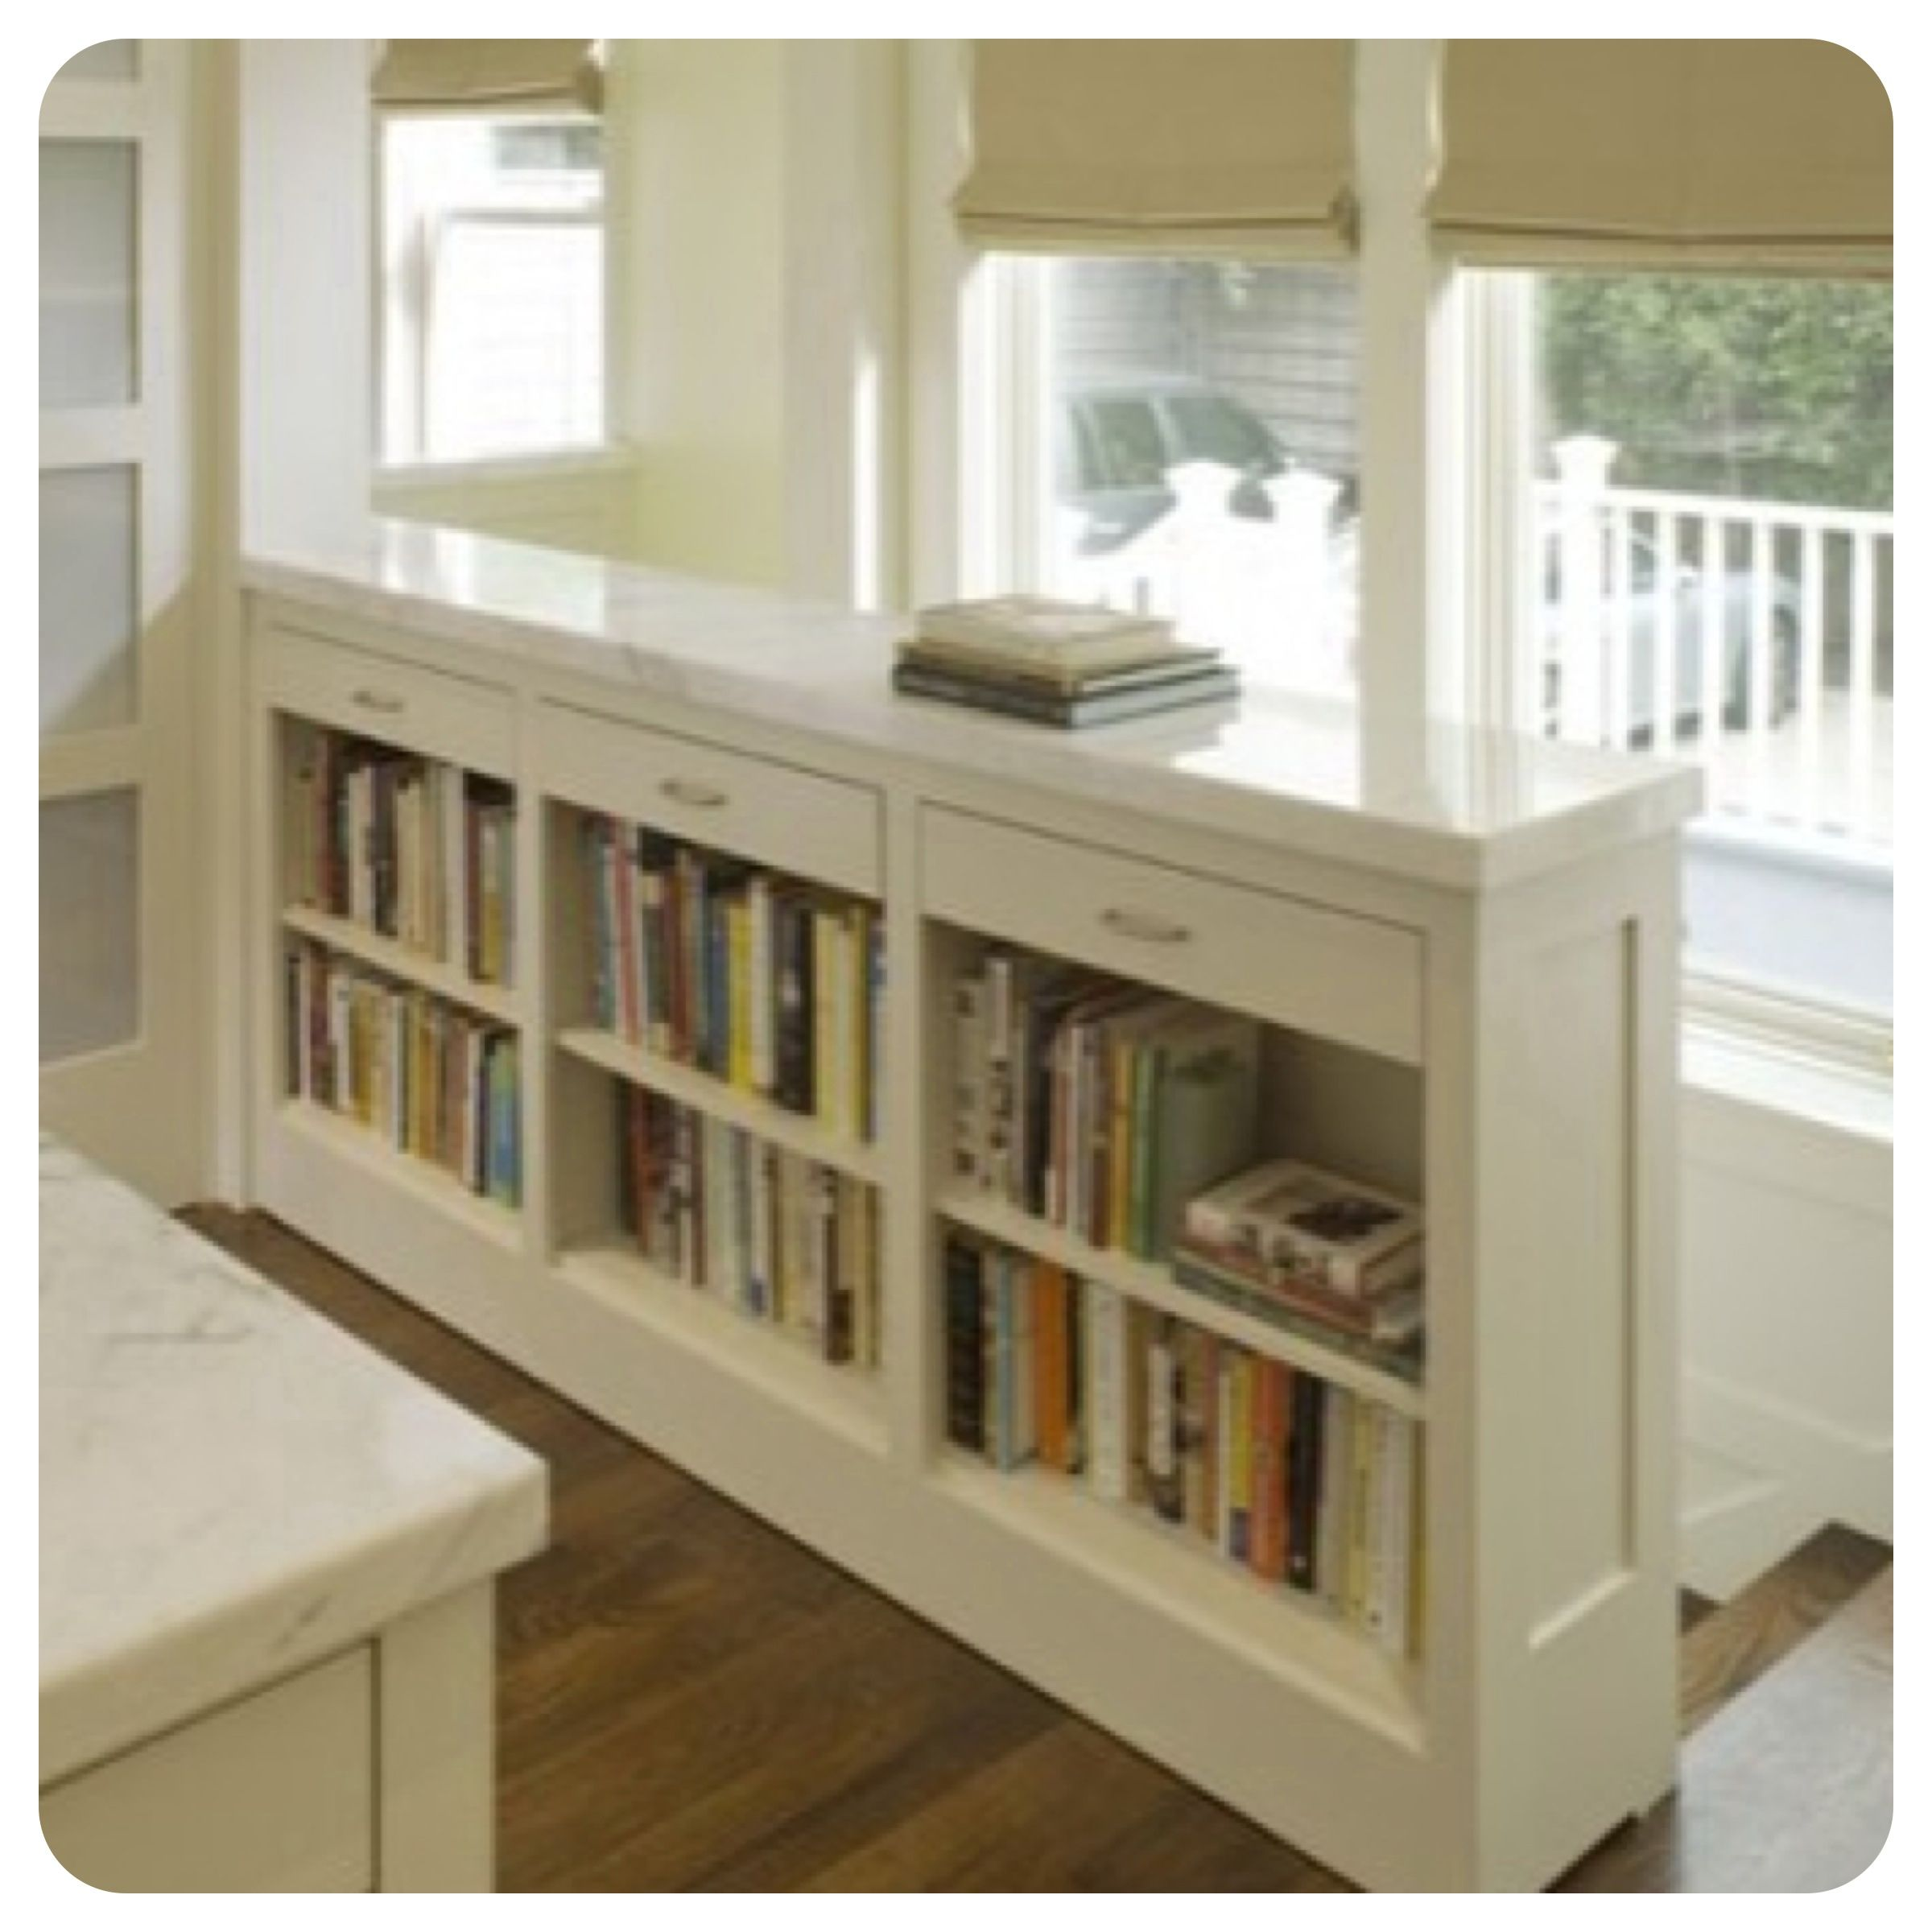 Best Pinterest Bookshelves How Genius Is That To Remove The 400 x 300